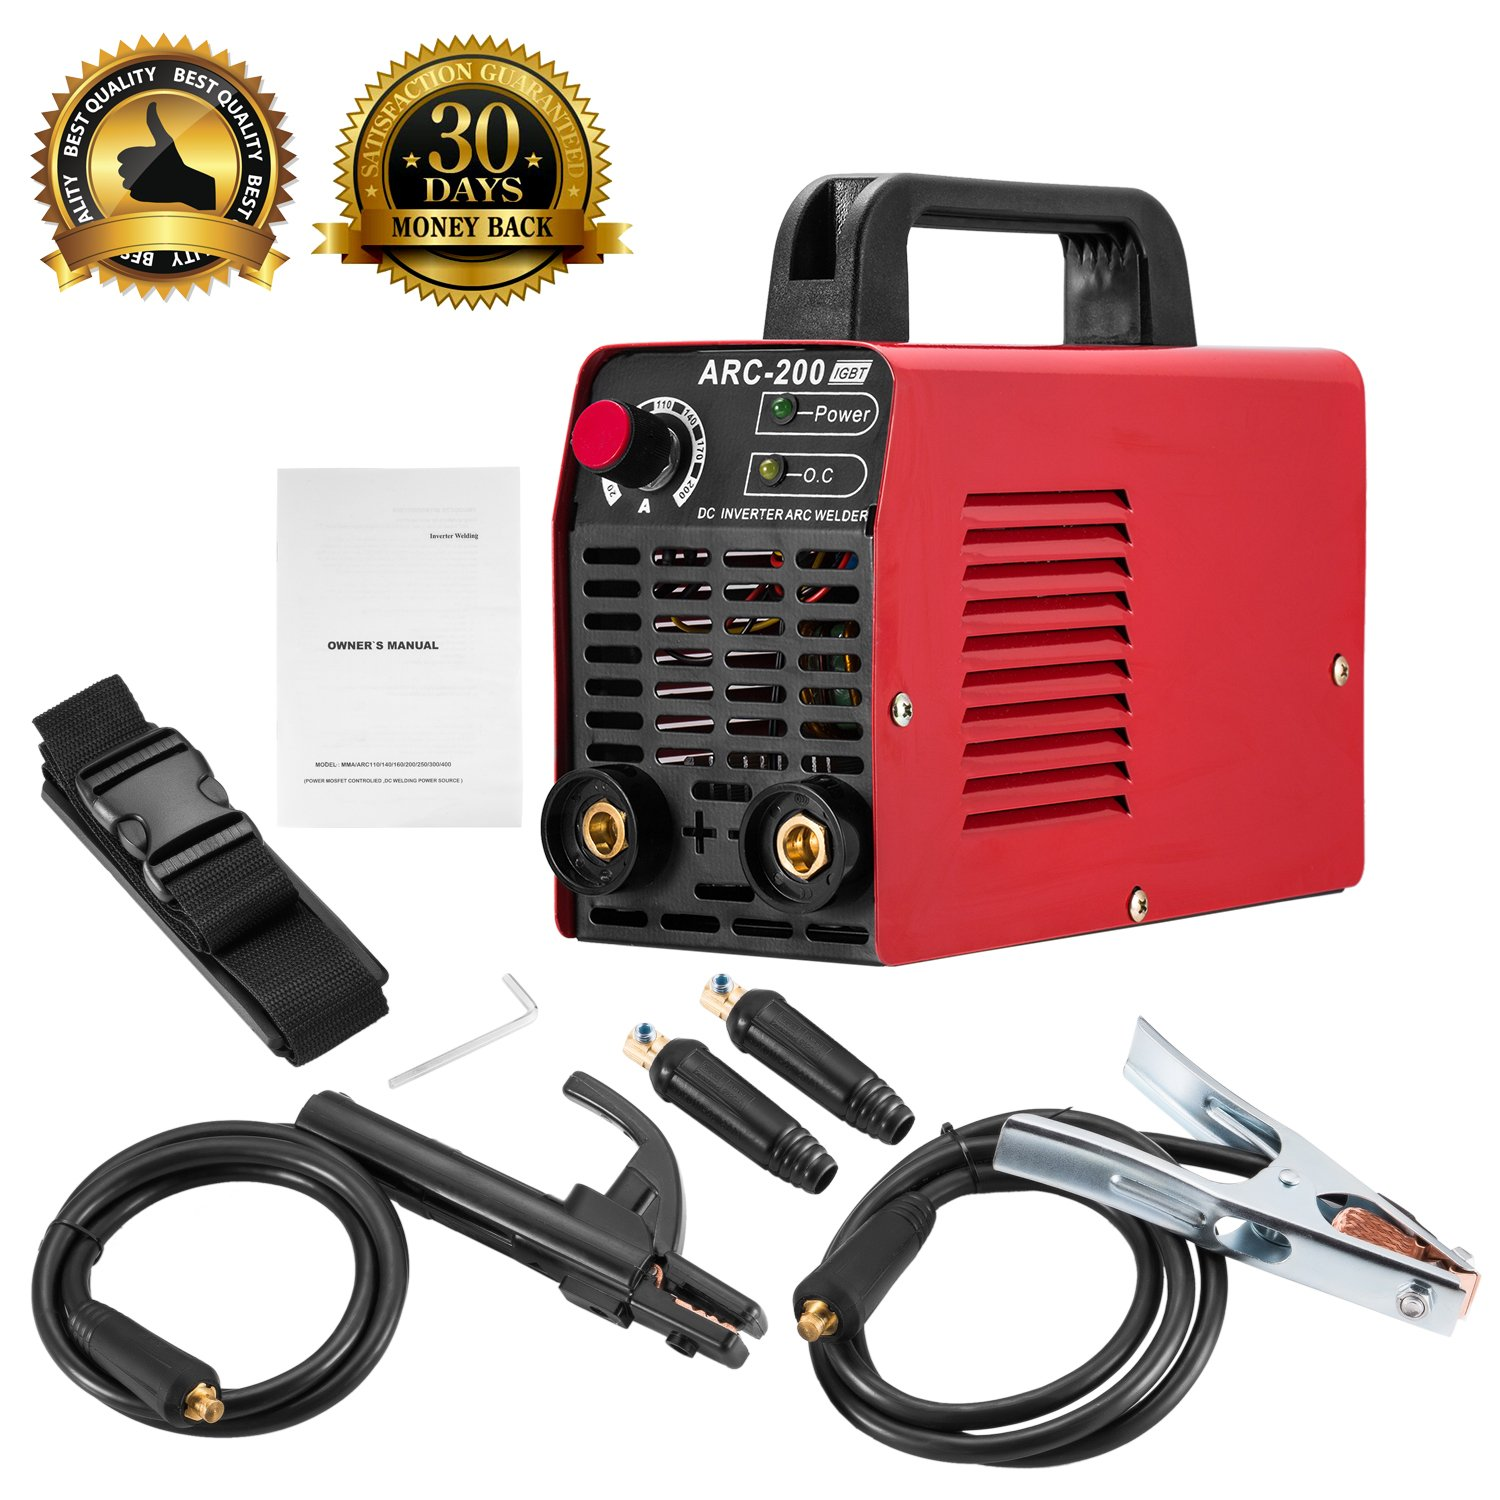 Arc Welder 110v 200a Welding Machine Igbt Inverter Dc Mini Electric Mode Schematic On Welders Free Accessories Tools High Frequency Household Smart For Novice